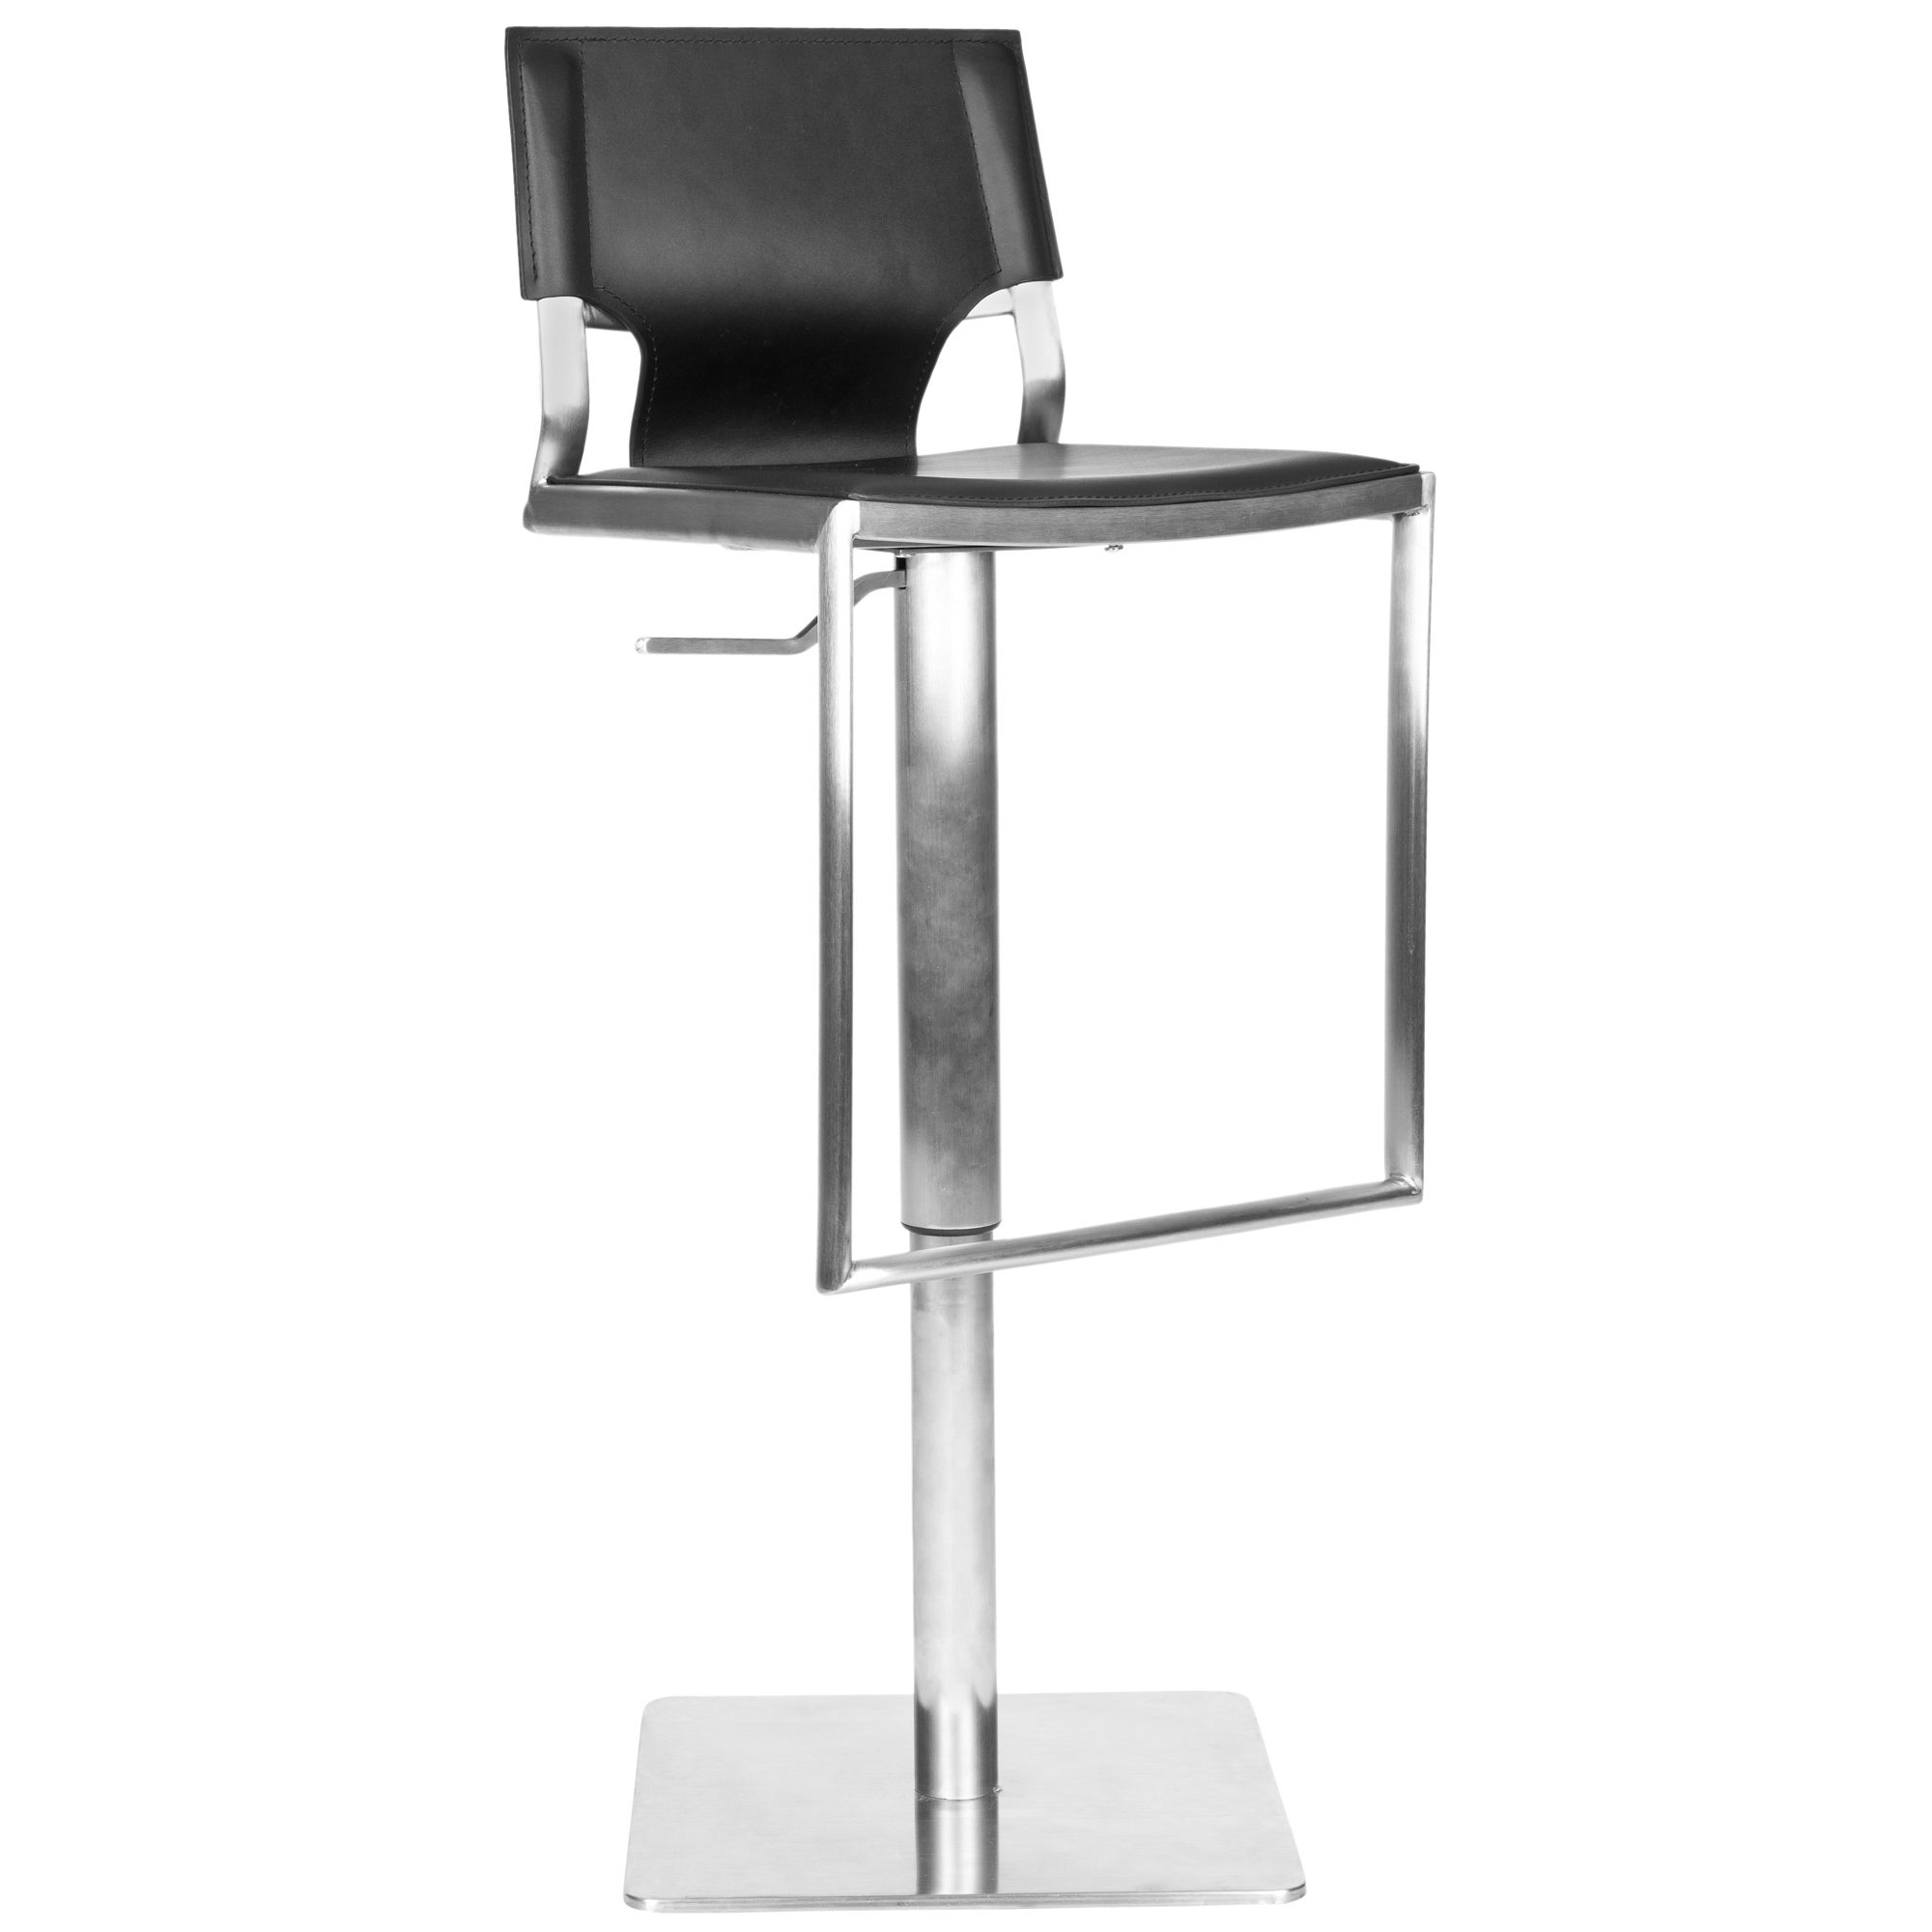 Fabulous Safavieh 22 4 31 5 Inch Deco Black Leather Seat Stainless Steel Adjustable Bar Stool 16 5 X 16 1 X 33 5 Gmtry Best Dining Table And Chair Ideas Images Gmtryco